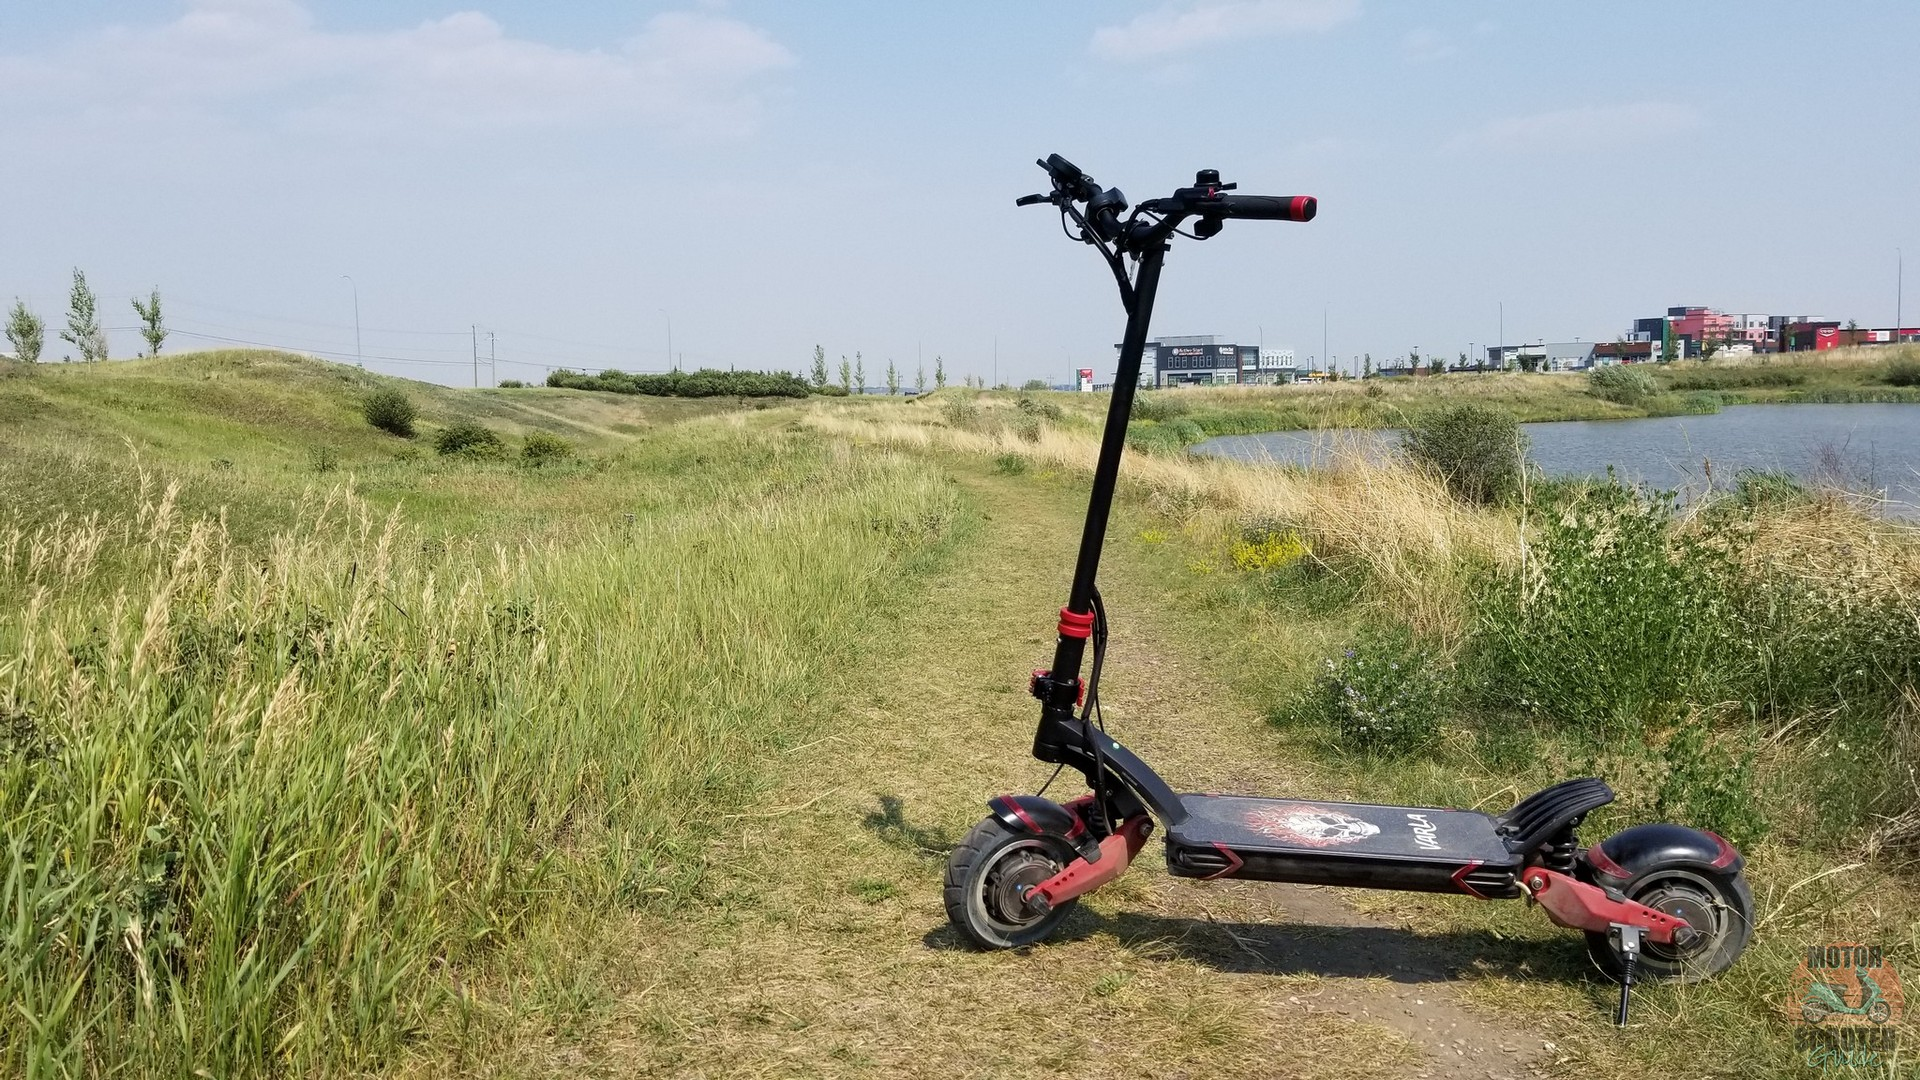 Varla Eagle One scooter on grass path